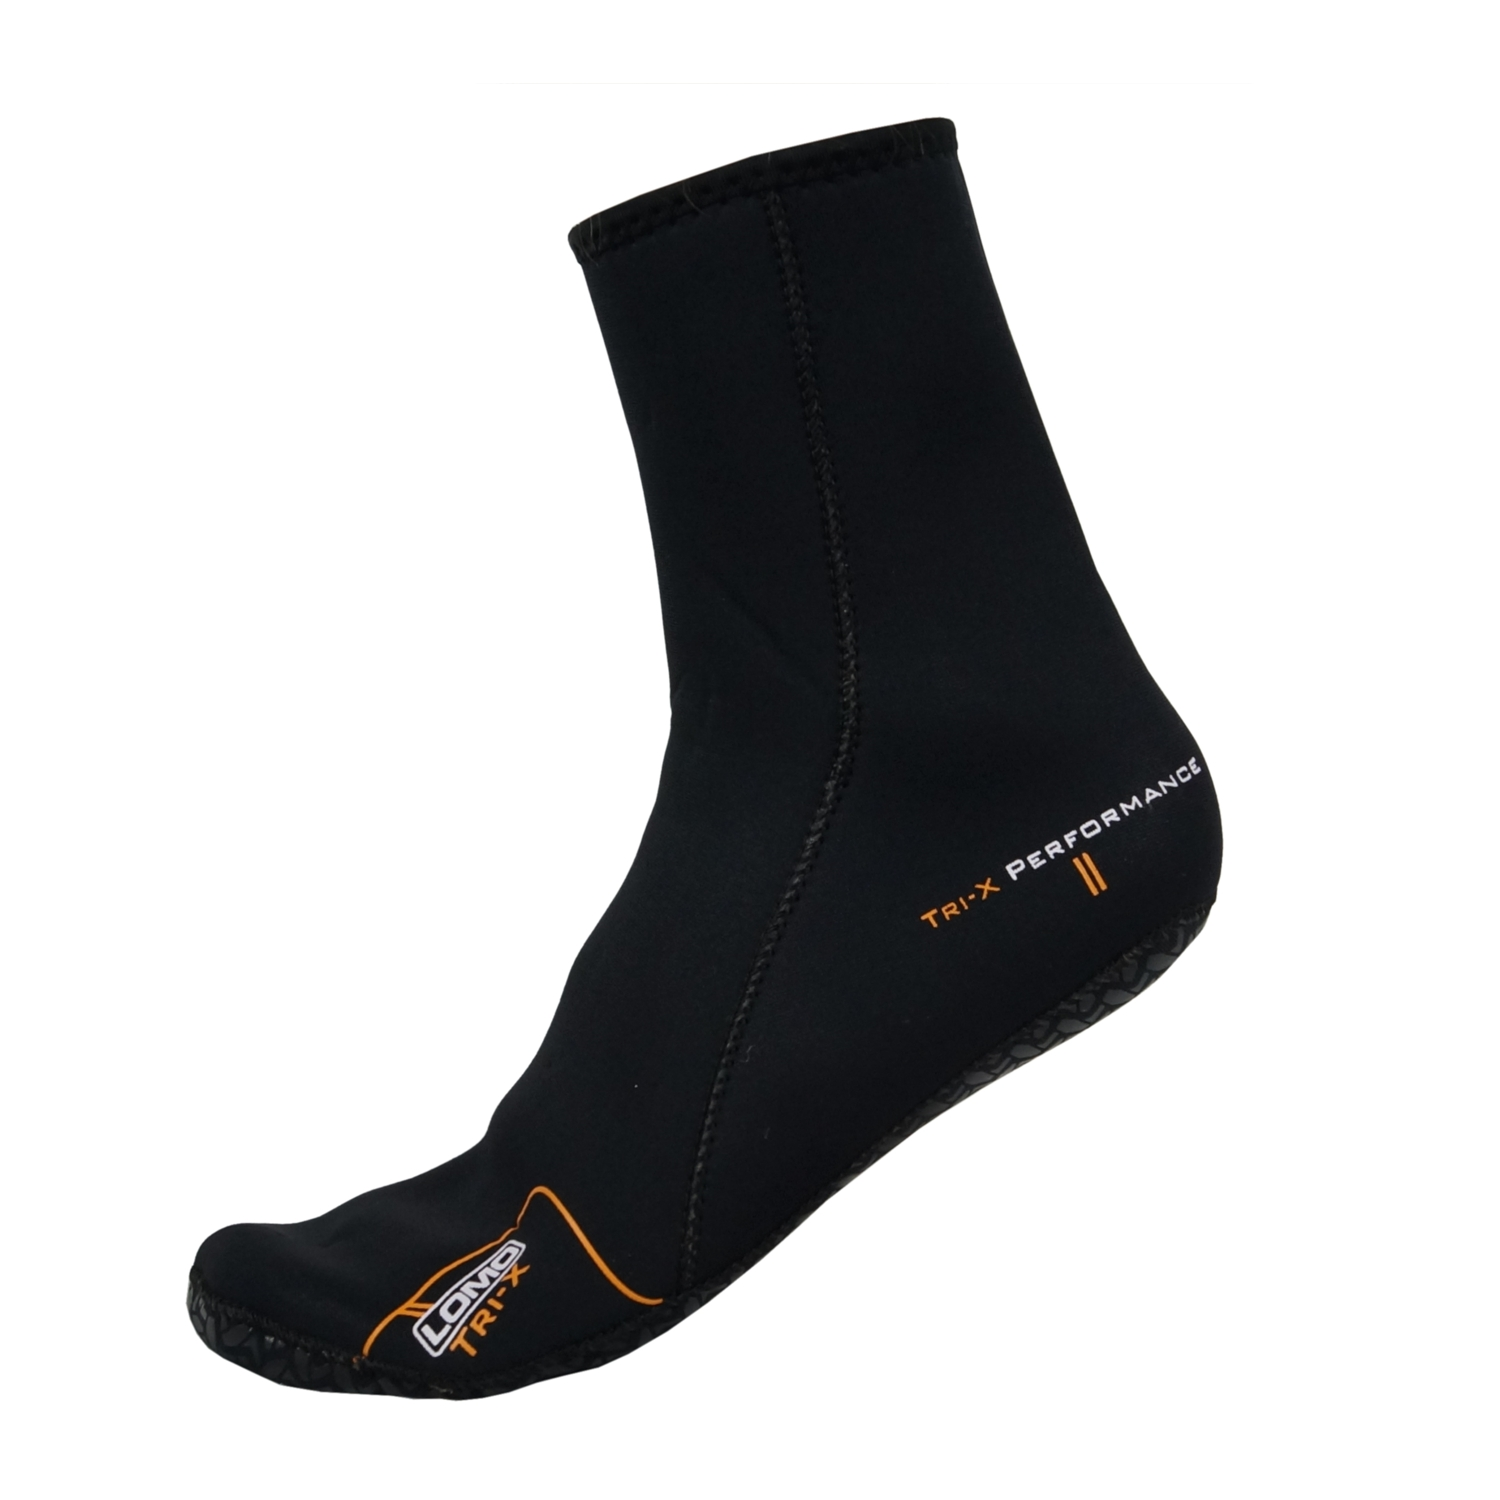 Sock - 3mm Neoprene wetsuit socks